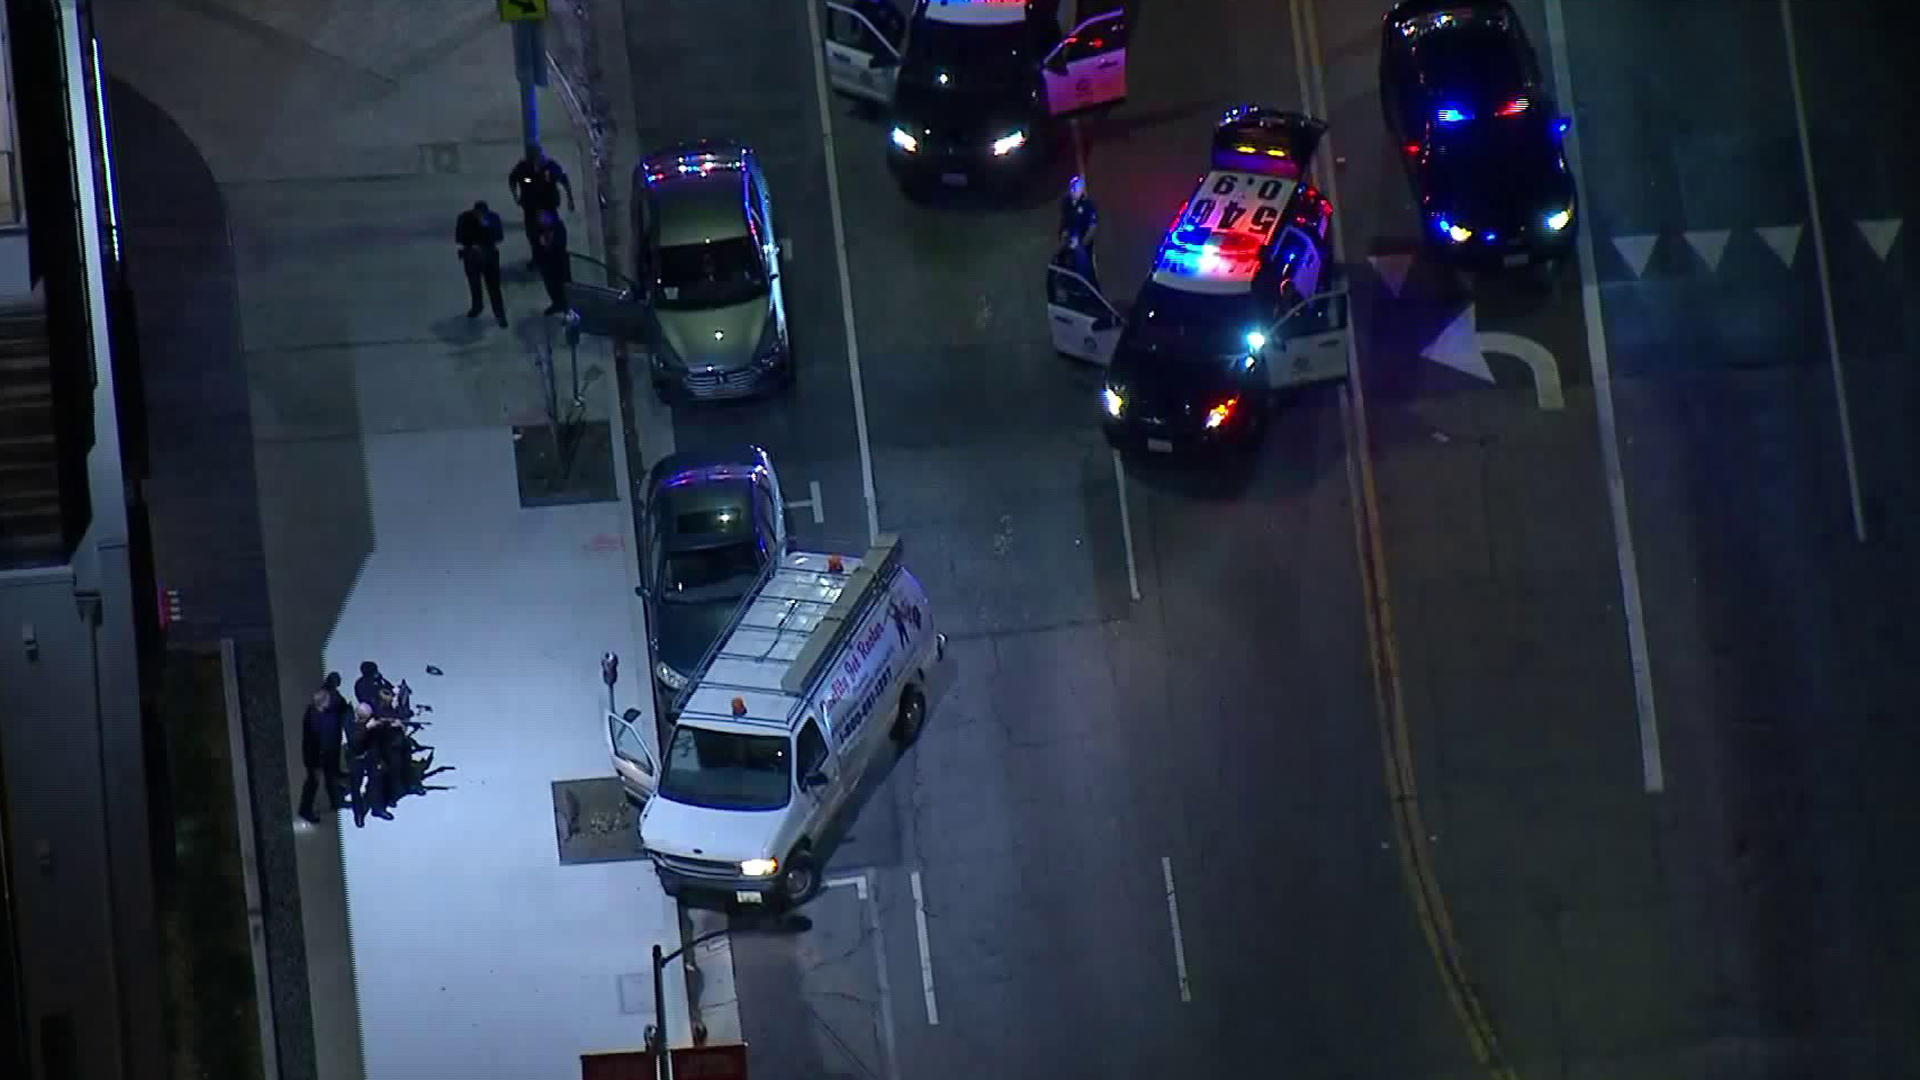 Los Angeles police detain a driver in Hollywood who led officers on a pursuit on Jan. 9, 2019. (Credit: Sky5)